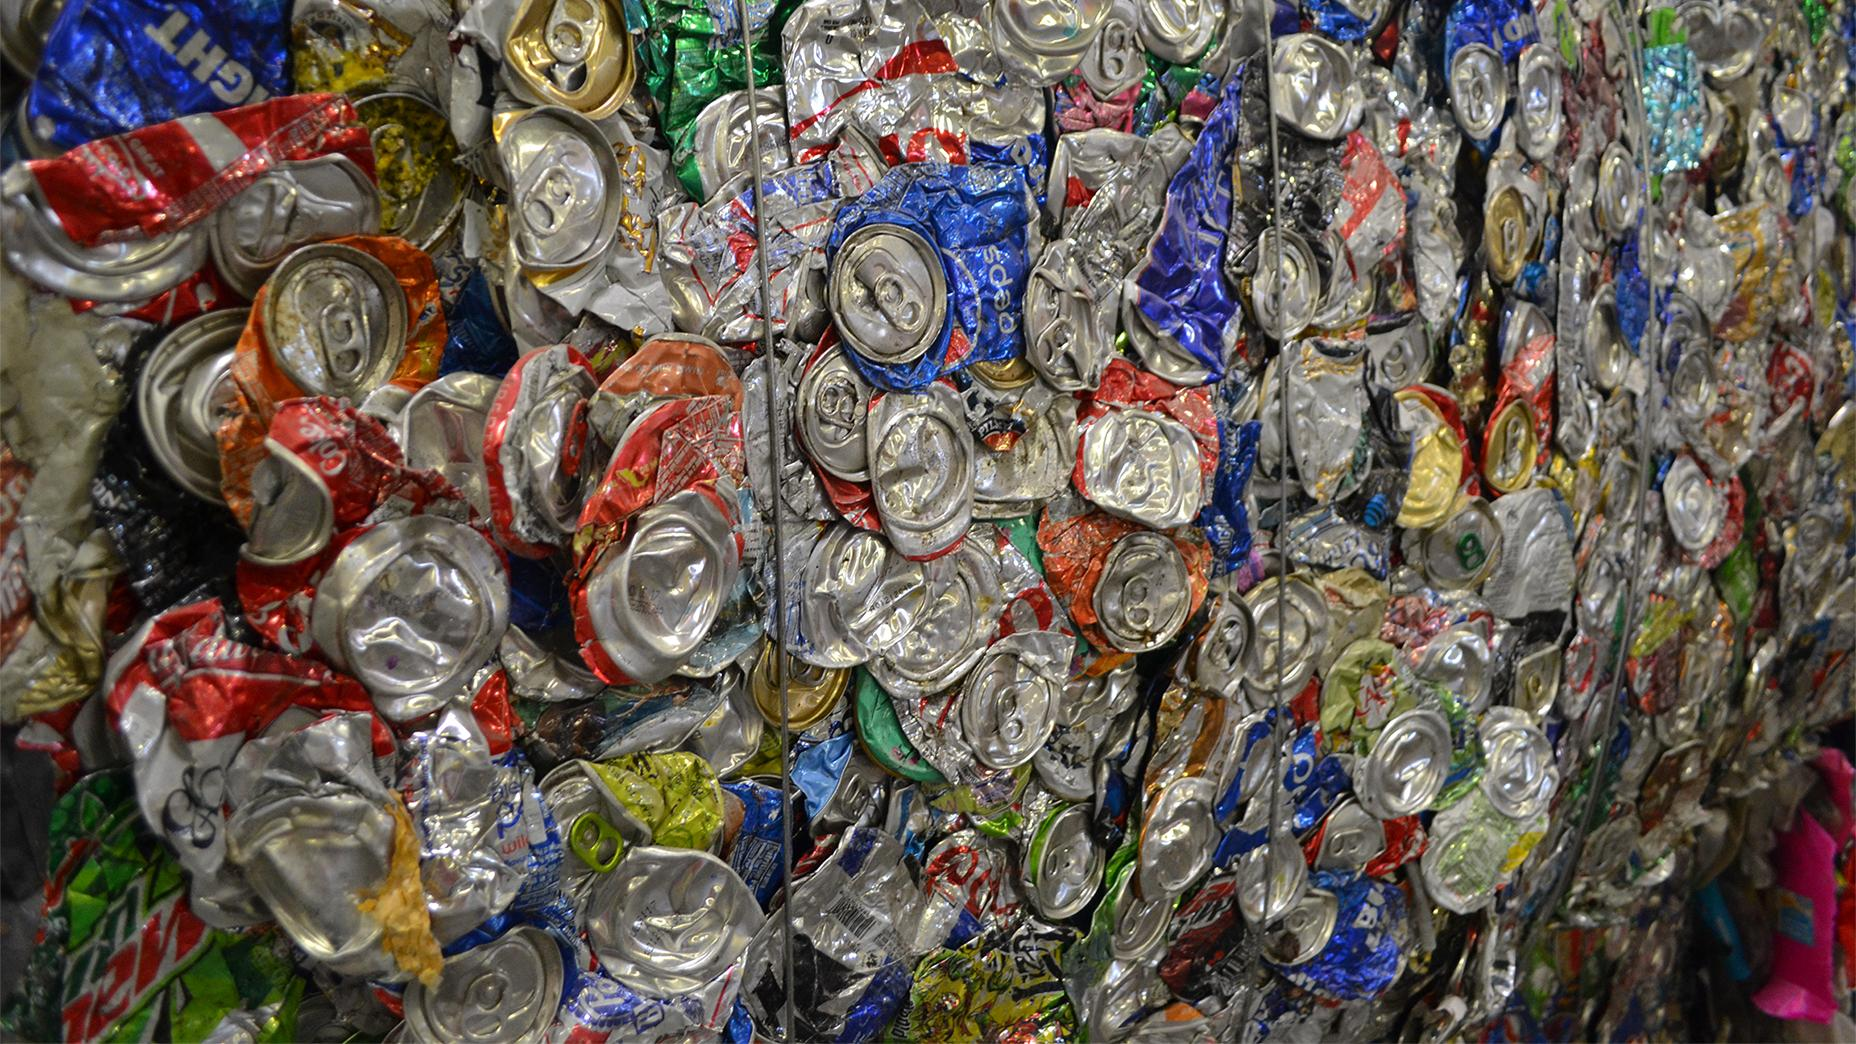 Aluminum cans bundled together in large bales at one of Chicago's recycling facilities wait to be transferred into a container and delivered elsewhere. (Alex Ruppenthal / Chicago Tonight)